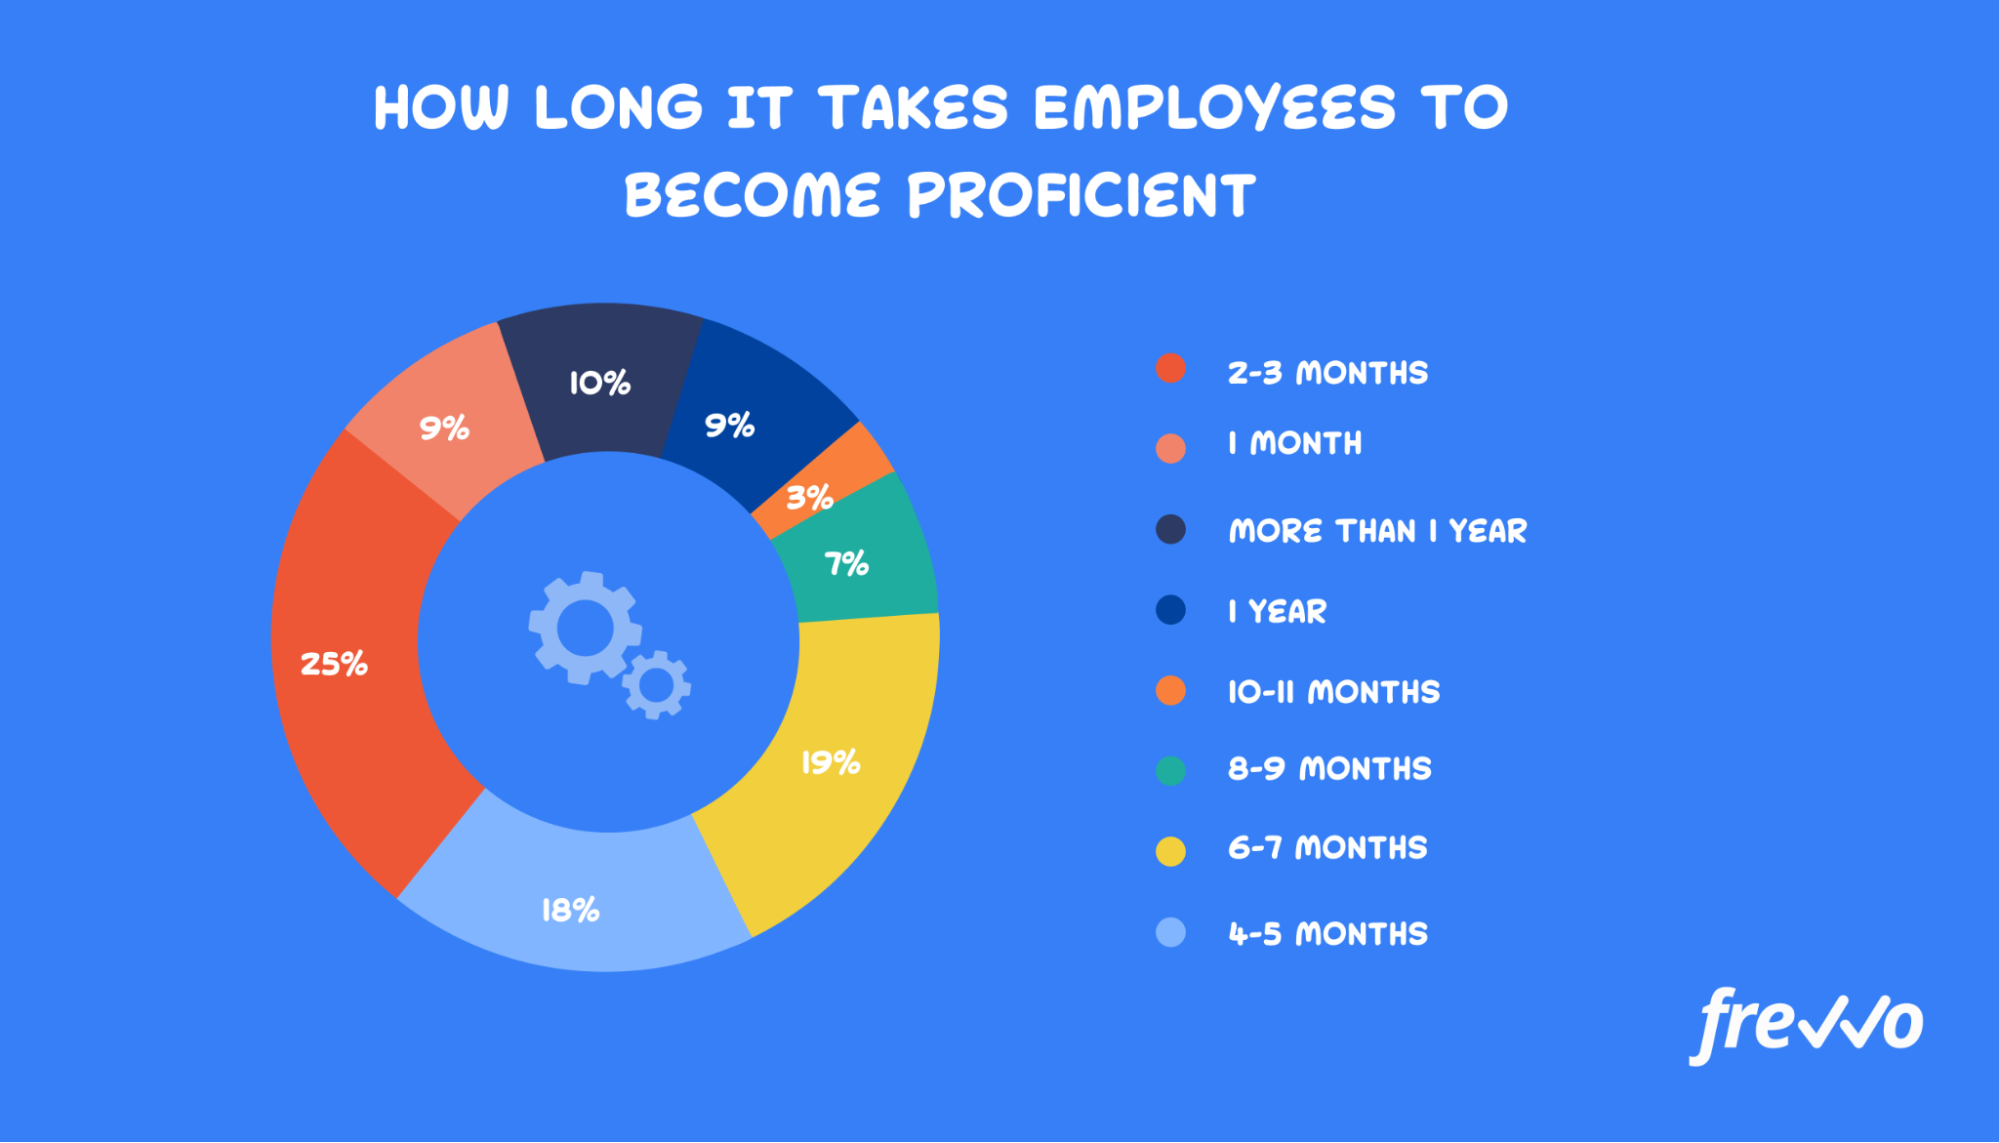 How long it takes new hires to reach proficiency